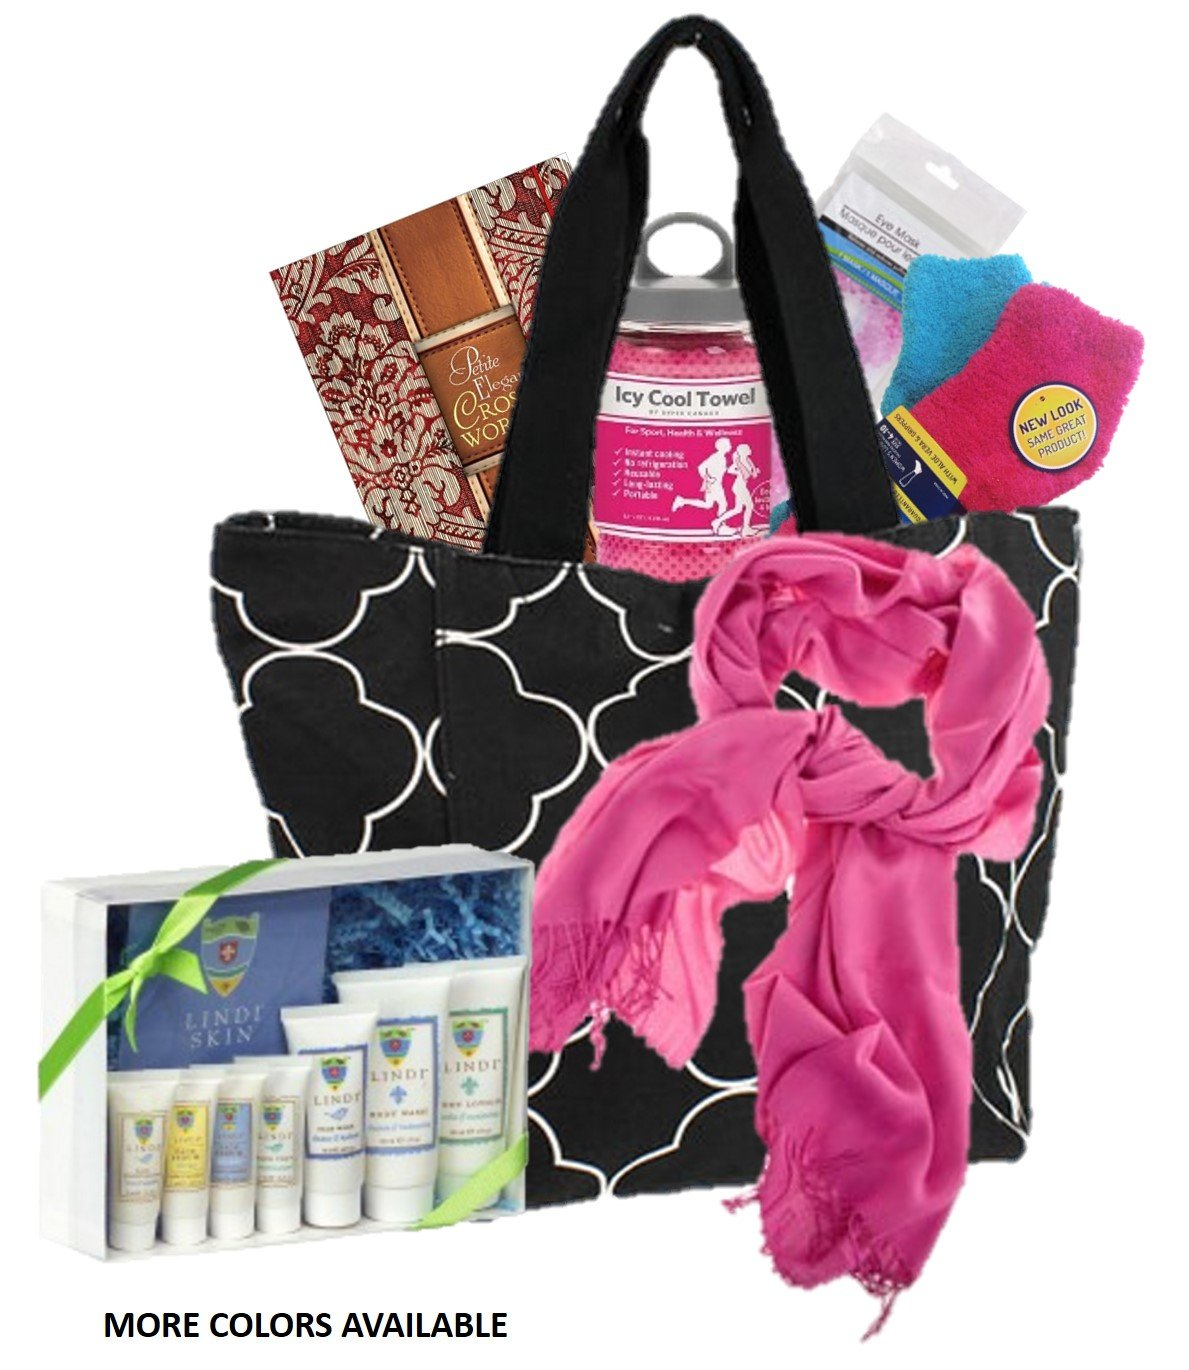 Radiation Lindi Skincare Cancer Care Package